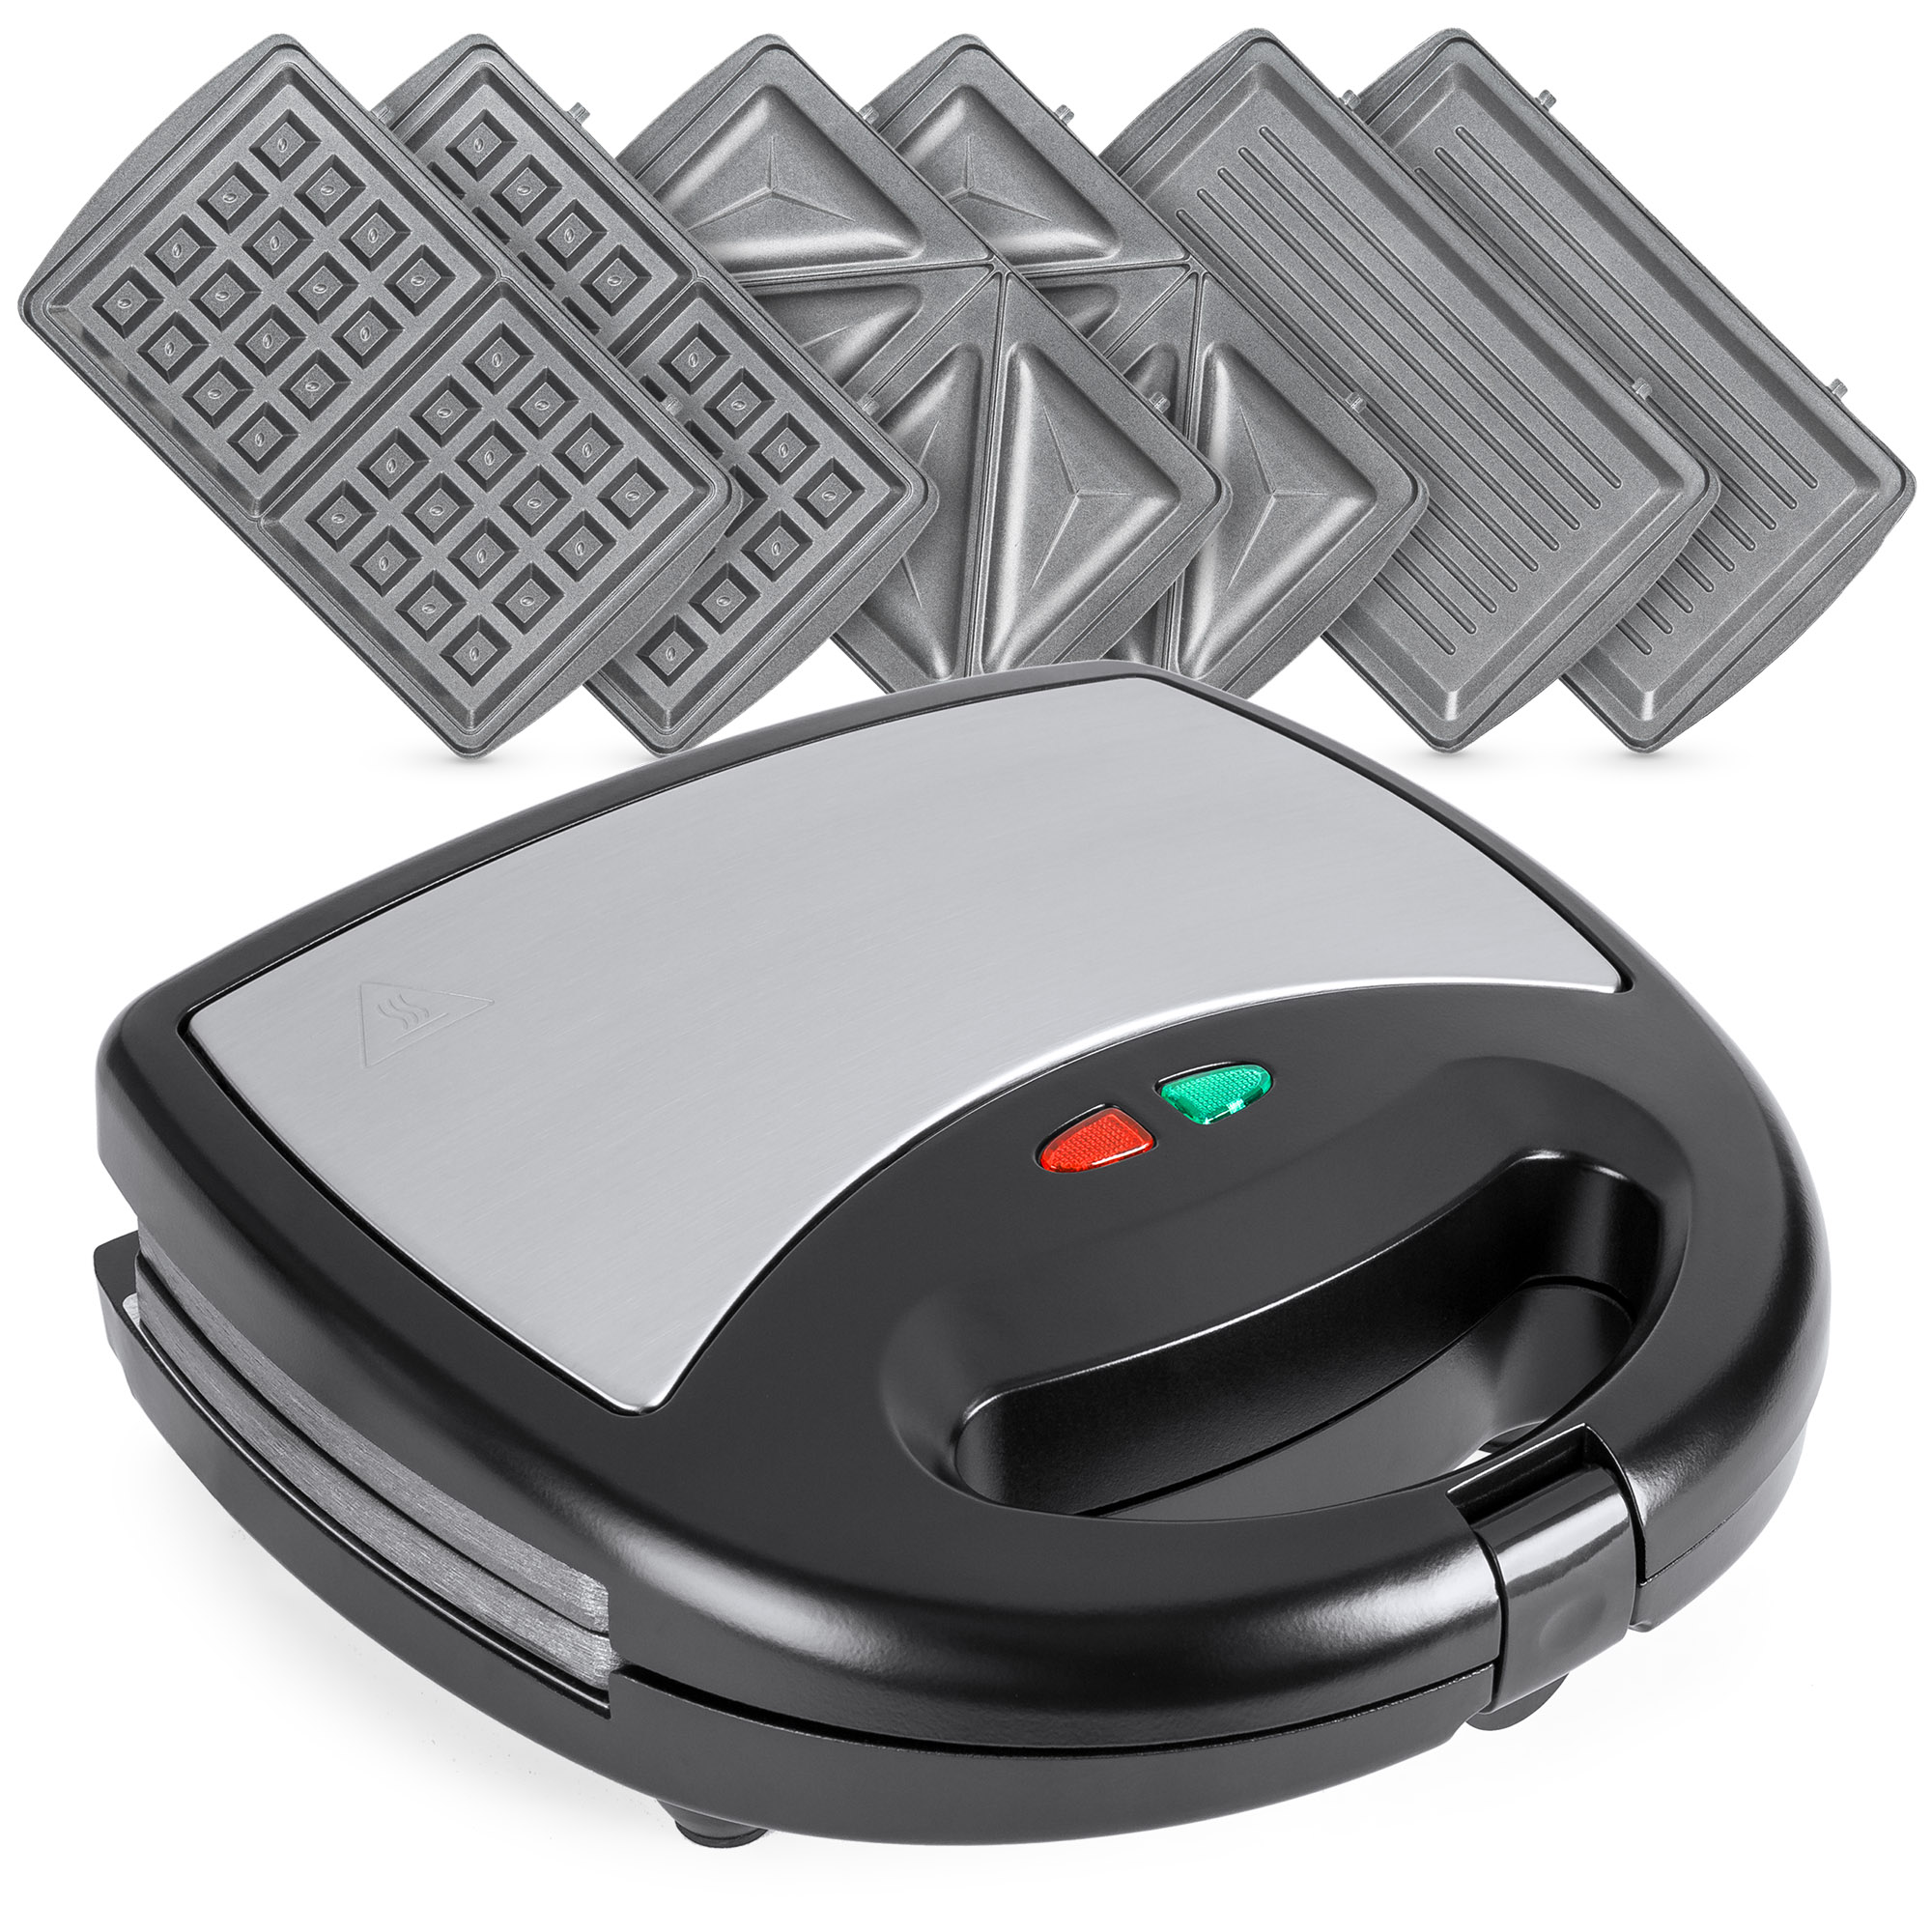 Best Choice Products 3-in-1 750W Dishwasher Safe Non-Stick Stainless Steel Electric Sandwich Waffle Panini Maker Press w/ 3 Interchangeable Grill Plates, Auto Shut Down, LED Indicator Light - Black